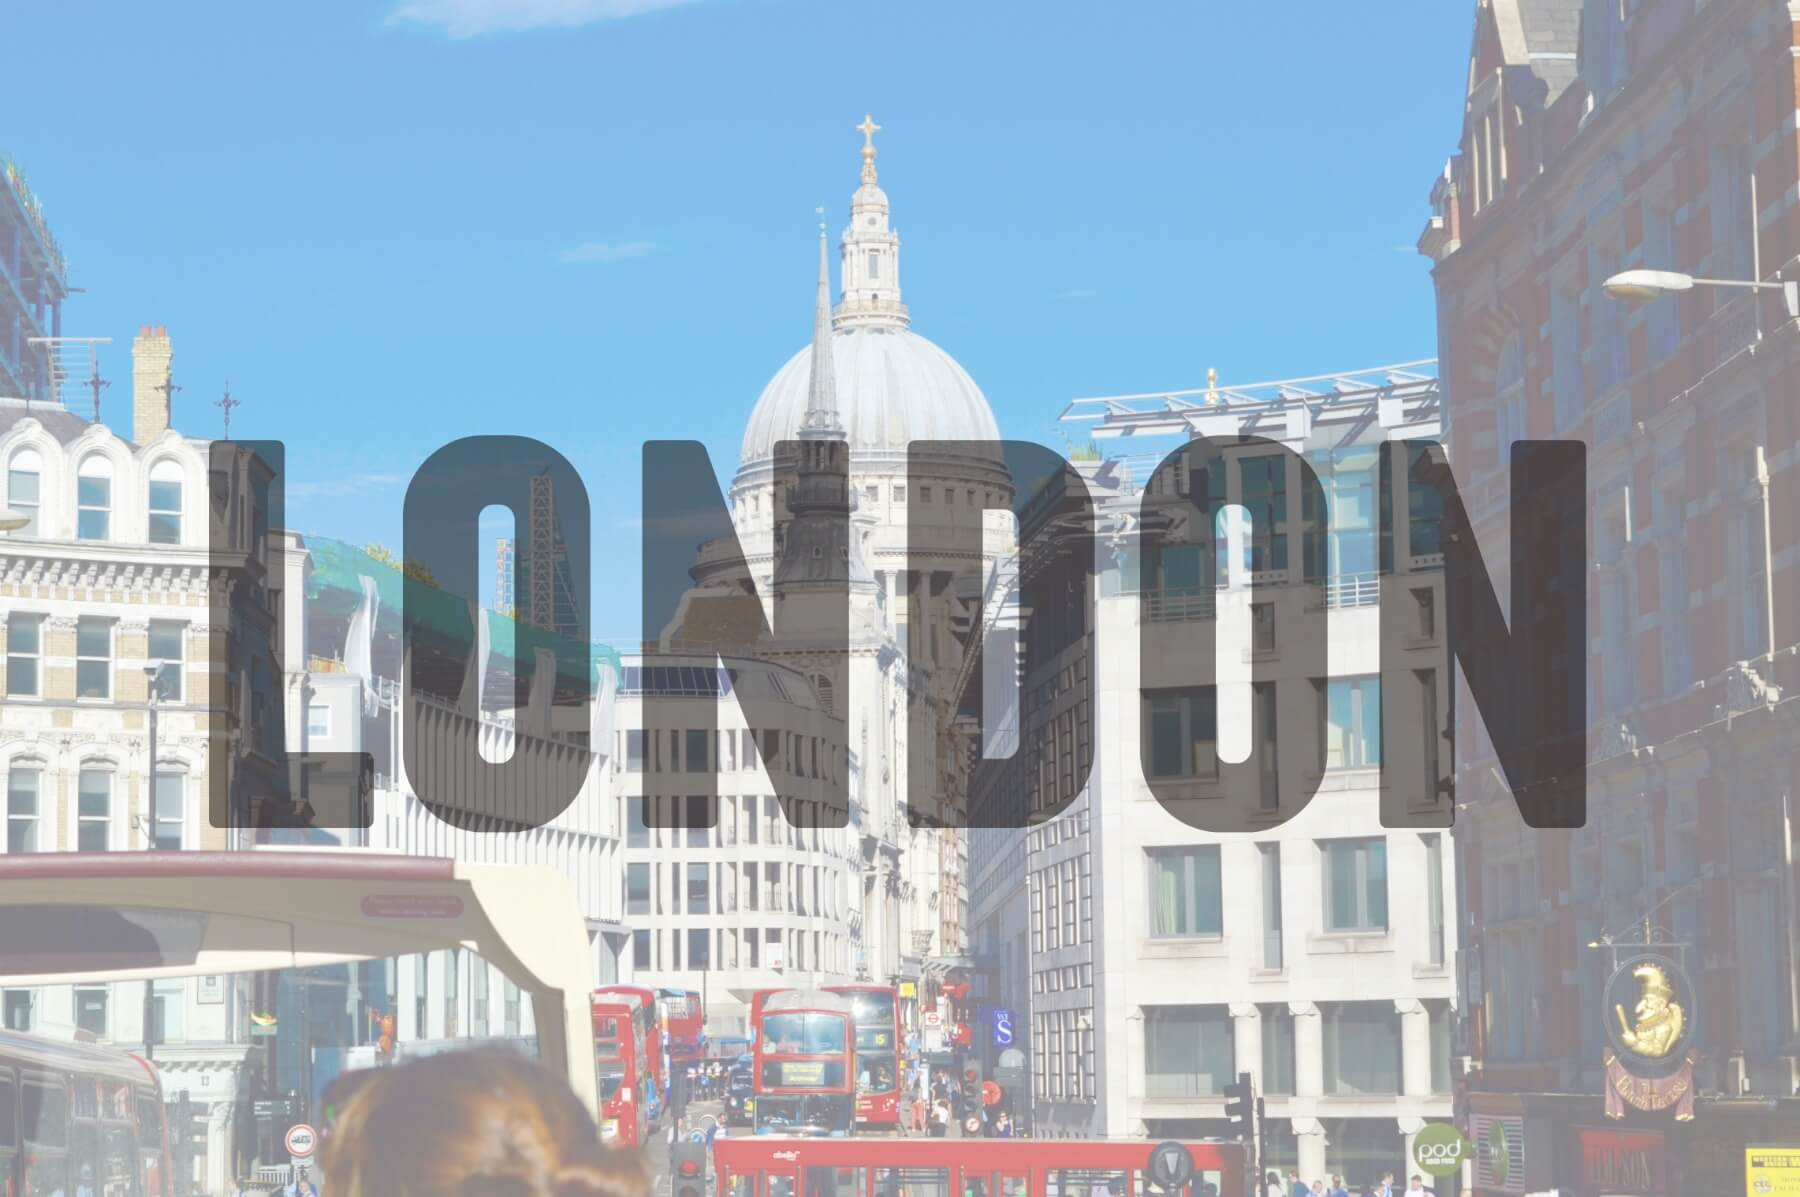 'LONDON' (Red bus and city scape)